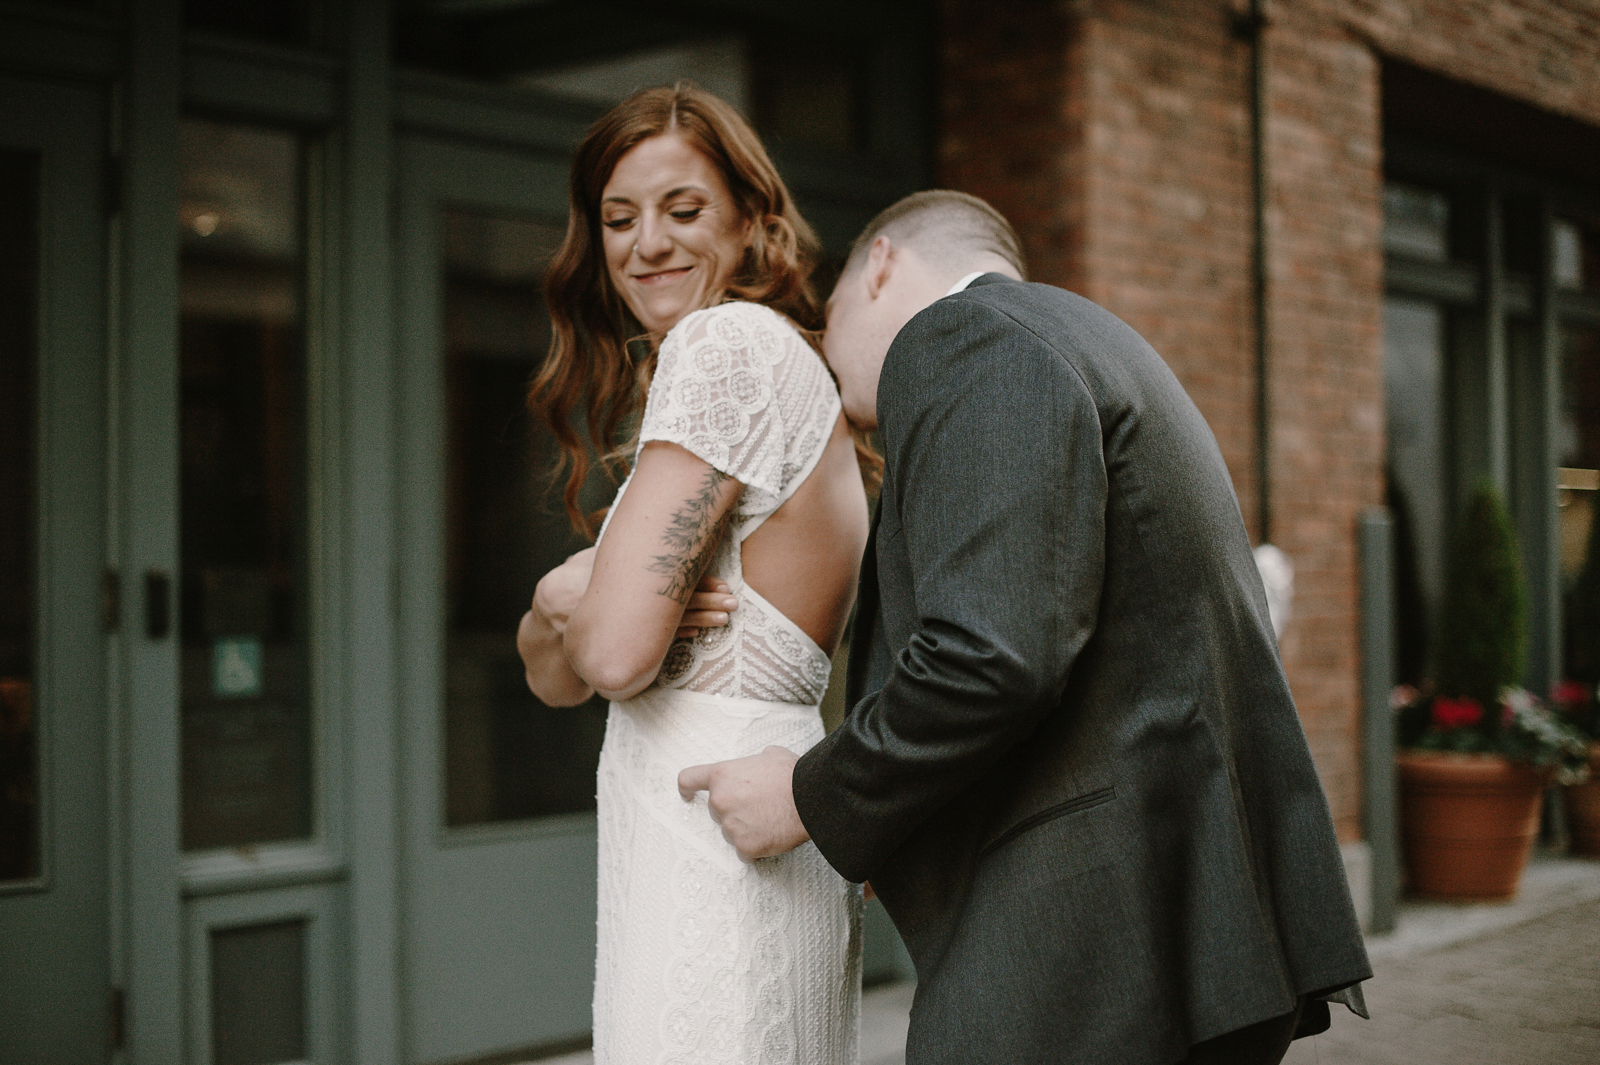 Downtown_Seattle_Wedding_Foundry_Sinclair_Moore014.JPG